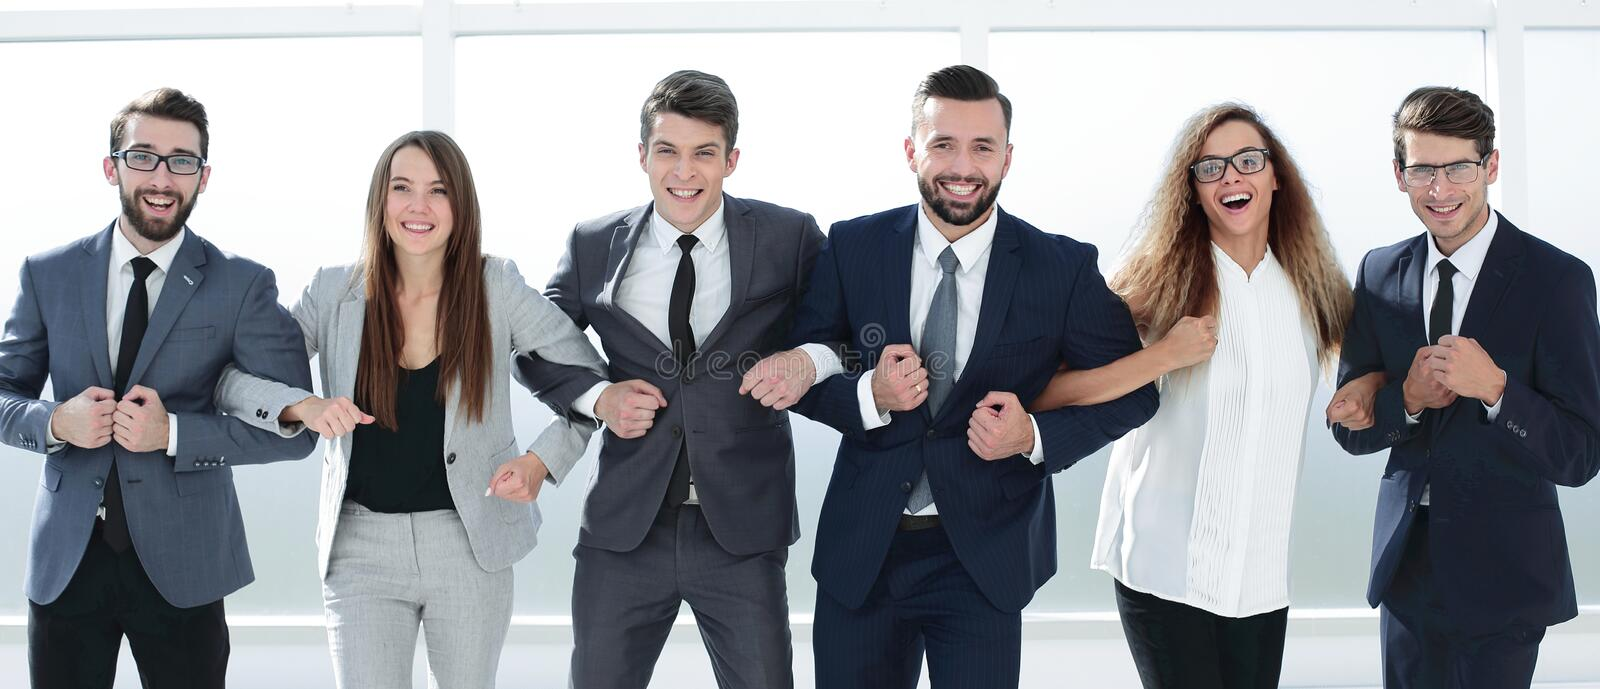 Successful cohesive business team standing together royalty free stock photography